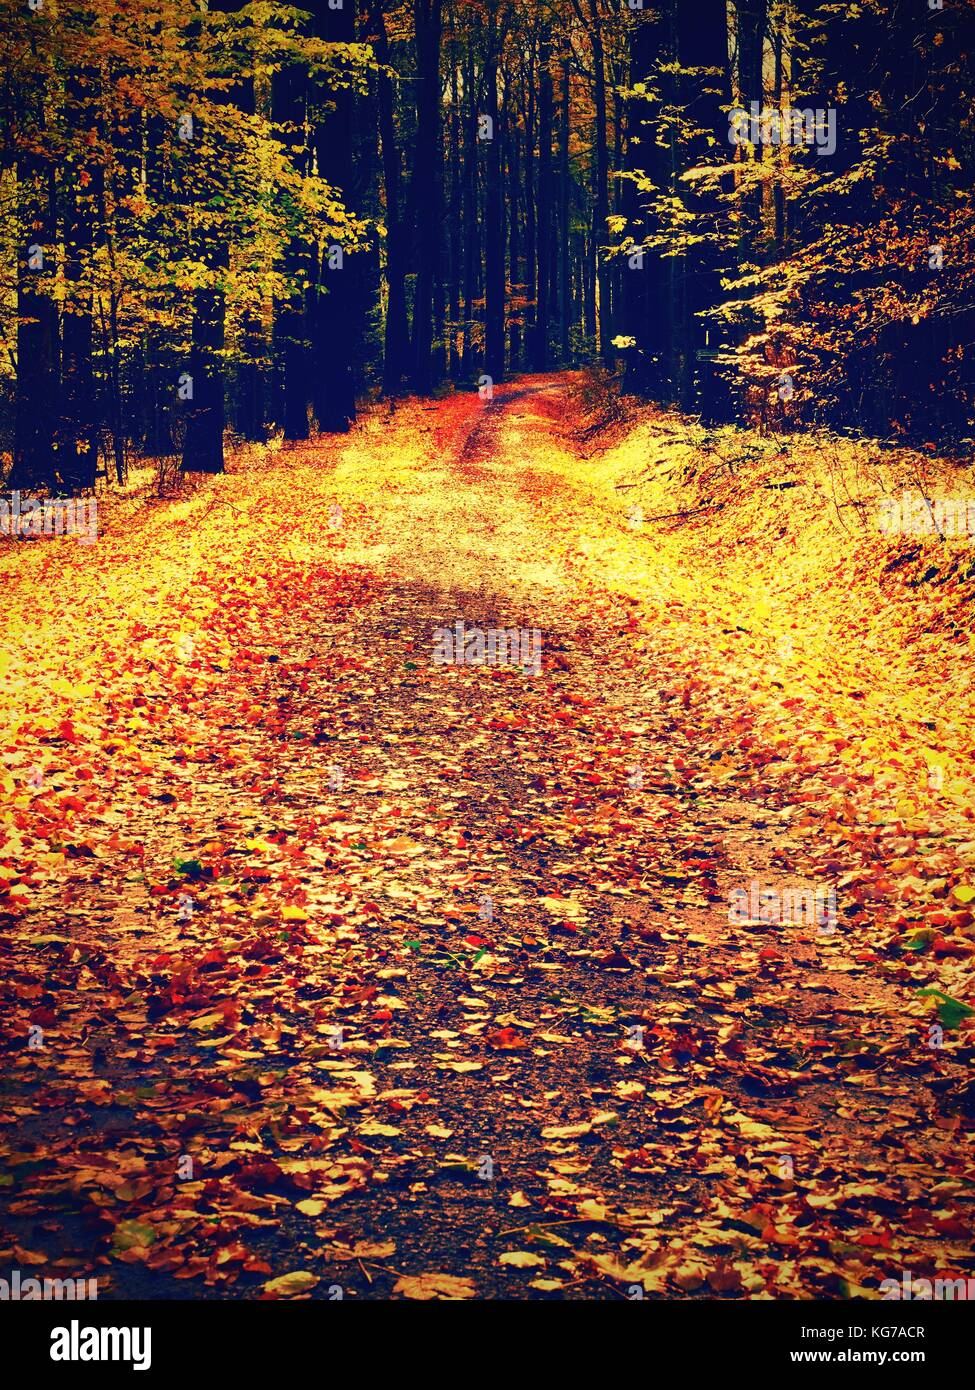 Yellow Orange Autumn Forest. Autumn forest with ground covered with orange and yellow leaves carpet. Sun rays shinning - Stock Image